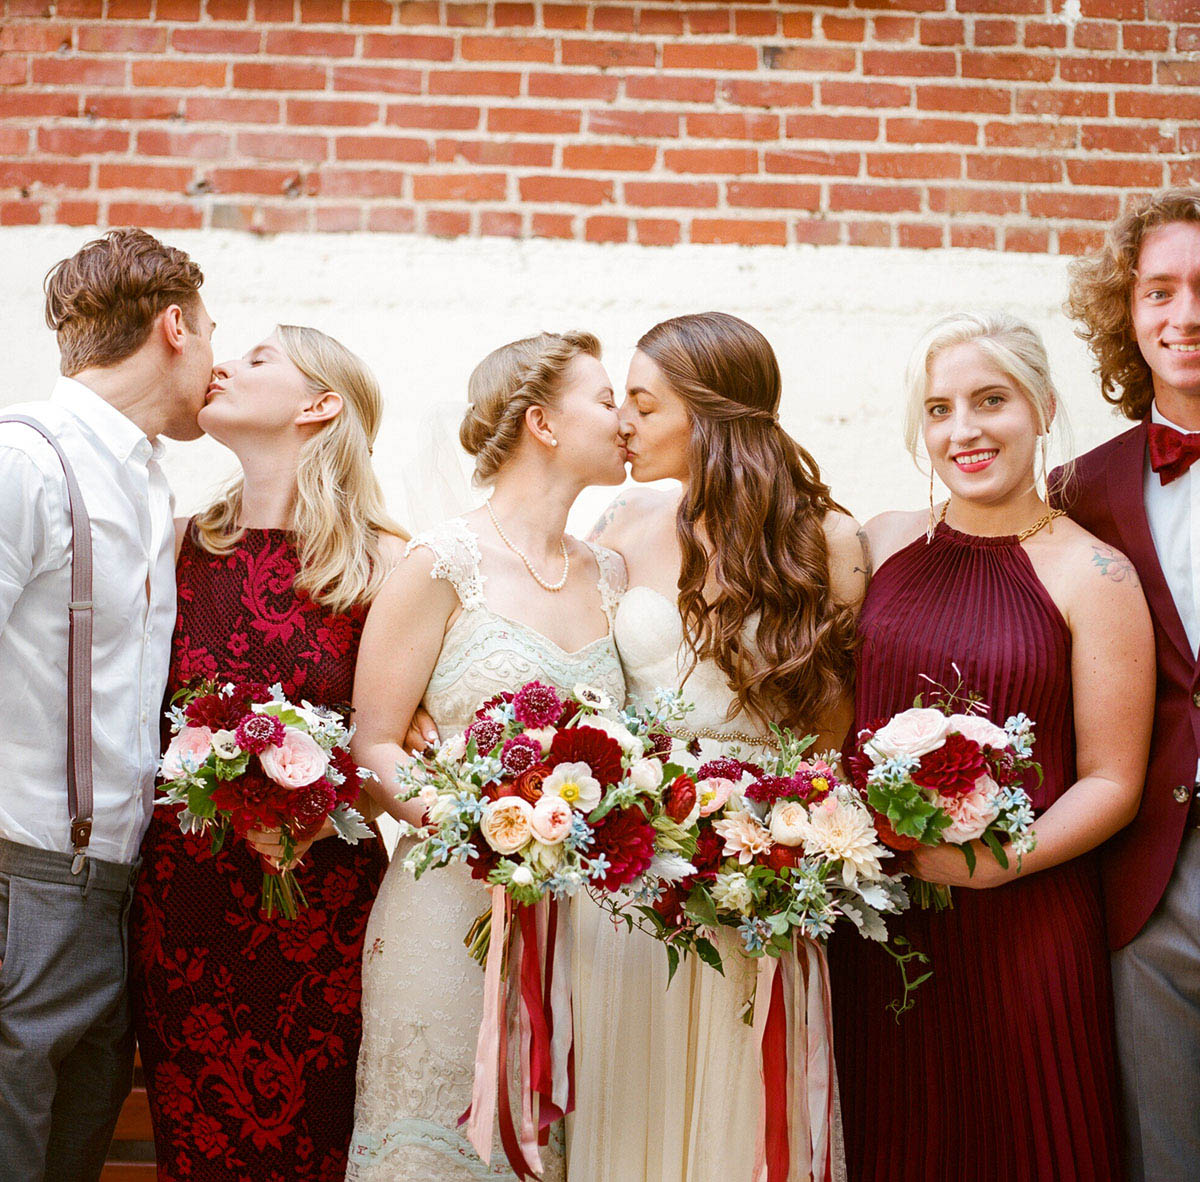 6-lesbian-wedding-bridal-party.jpg